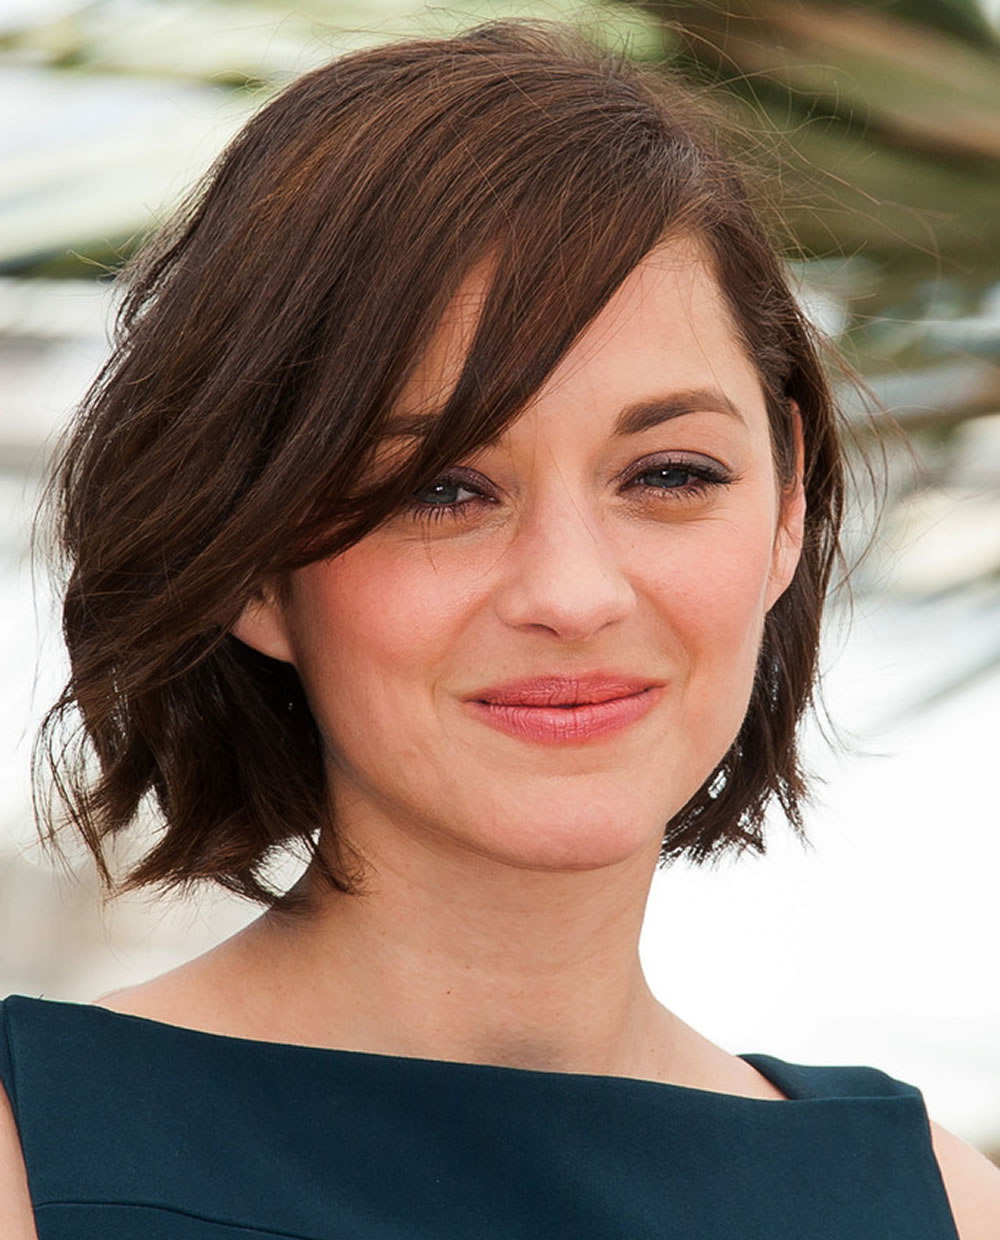 Textured-Hair-with-Swoopy-Bangs Cute Bob Haircuts for Women to Look Charming